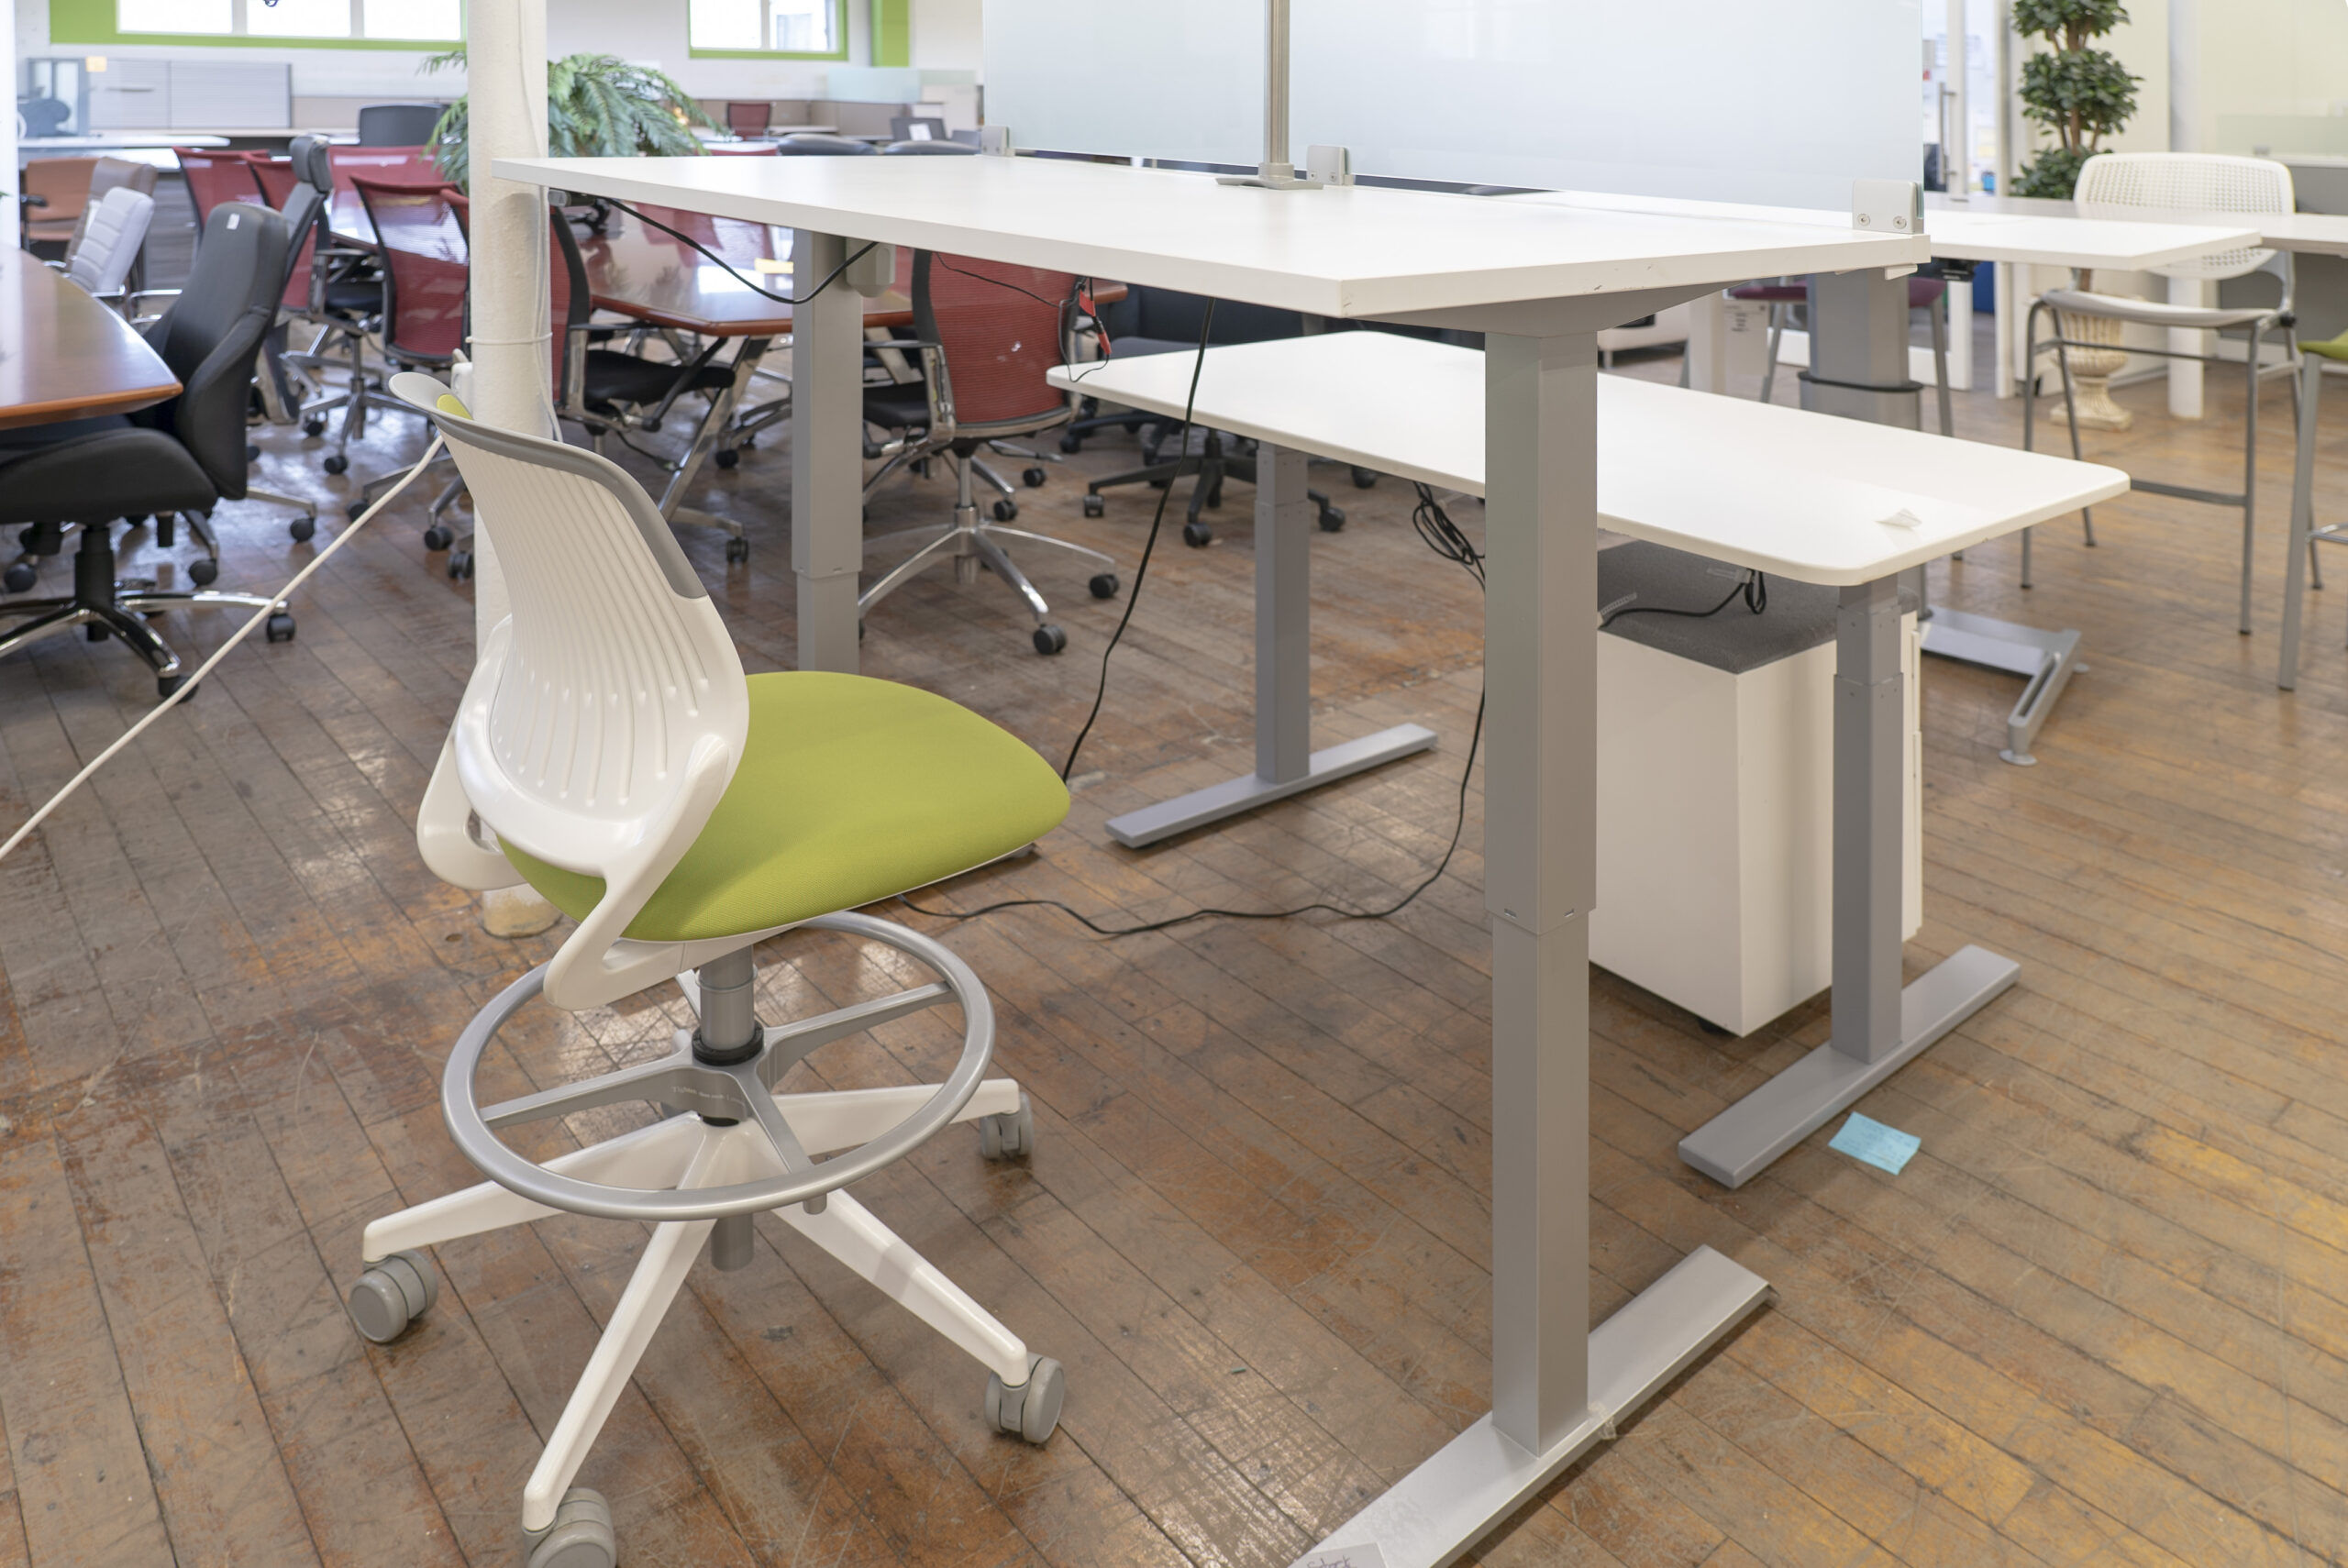 peartree-height-adjustable-sit-to-stand-desks-with-frosted-glass-screen